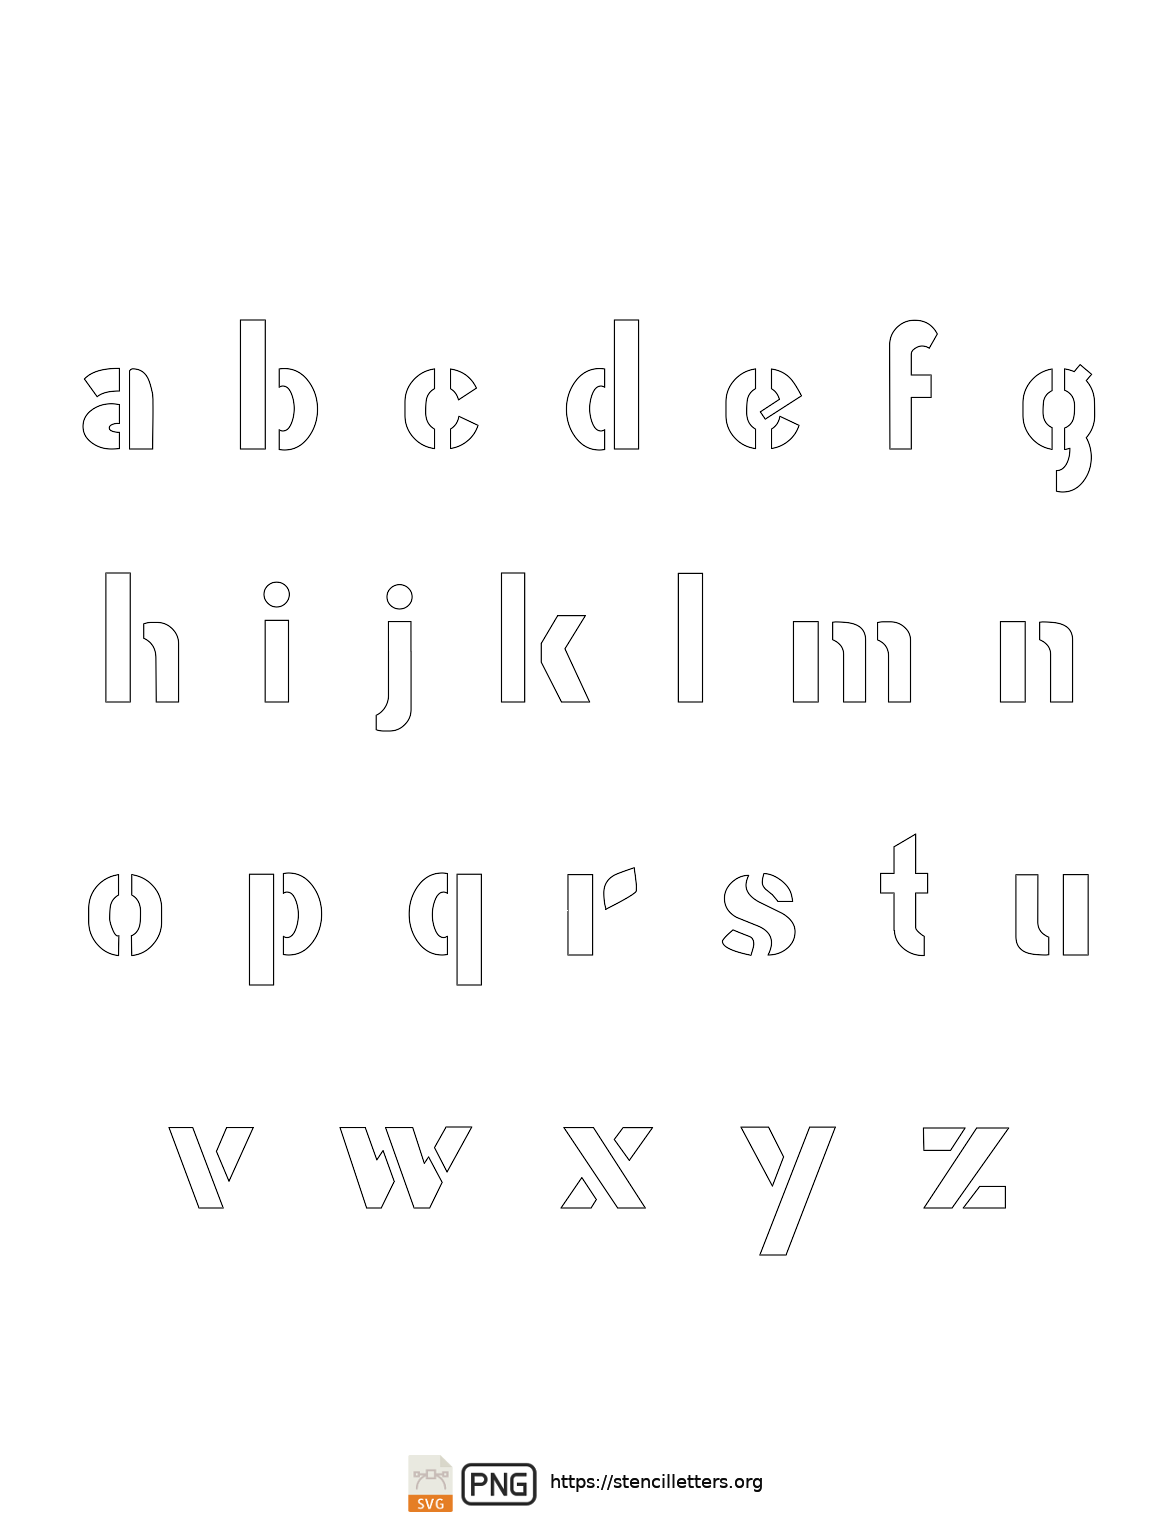 Gothic Bold Army lowercase letter stencils